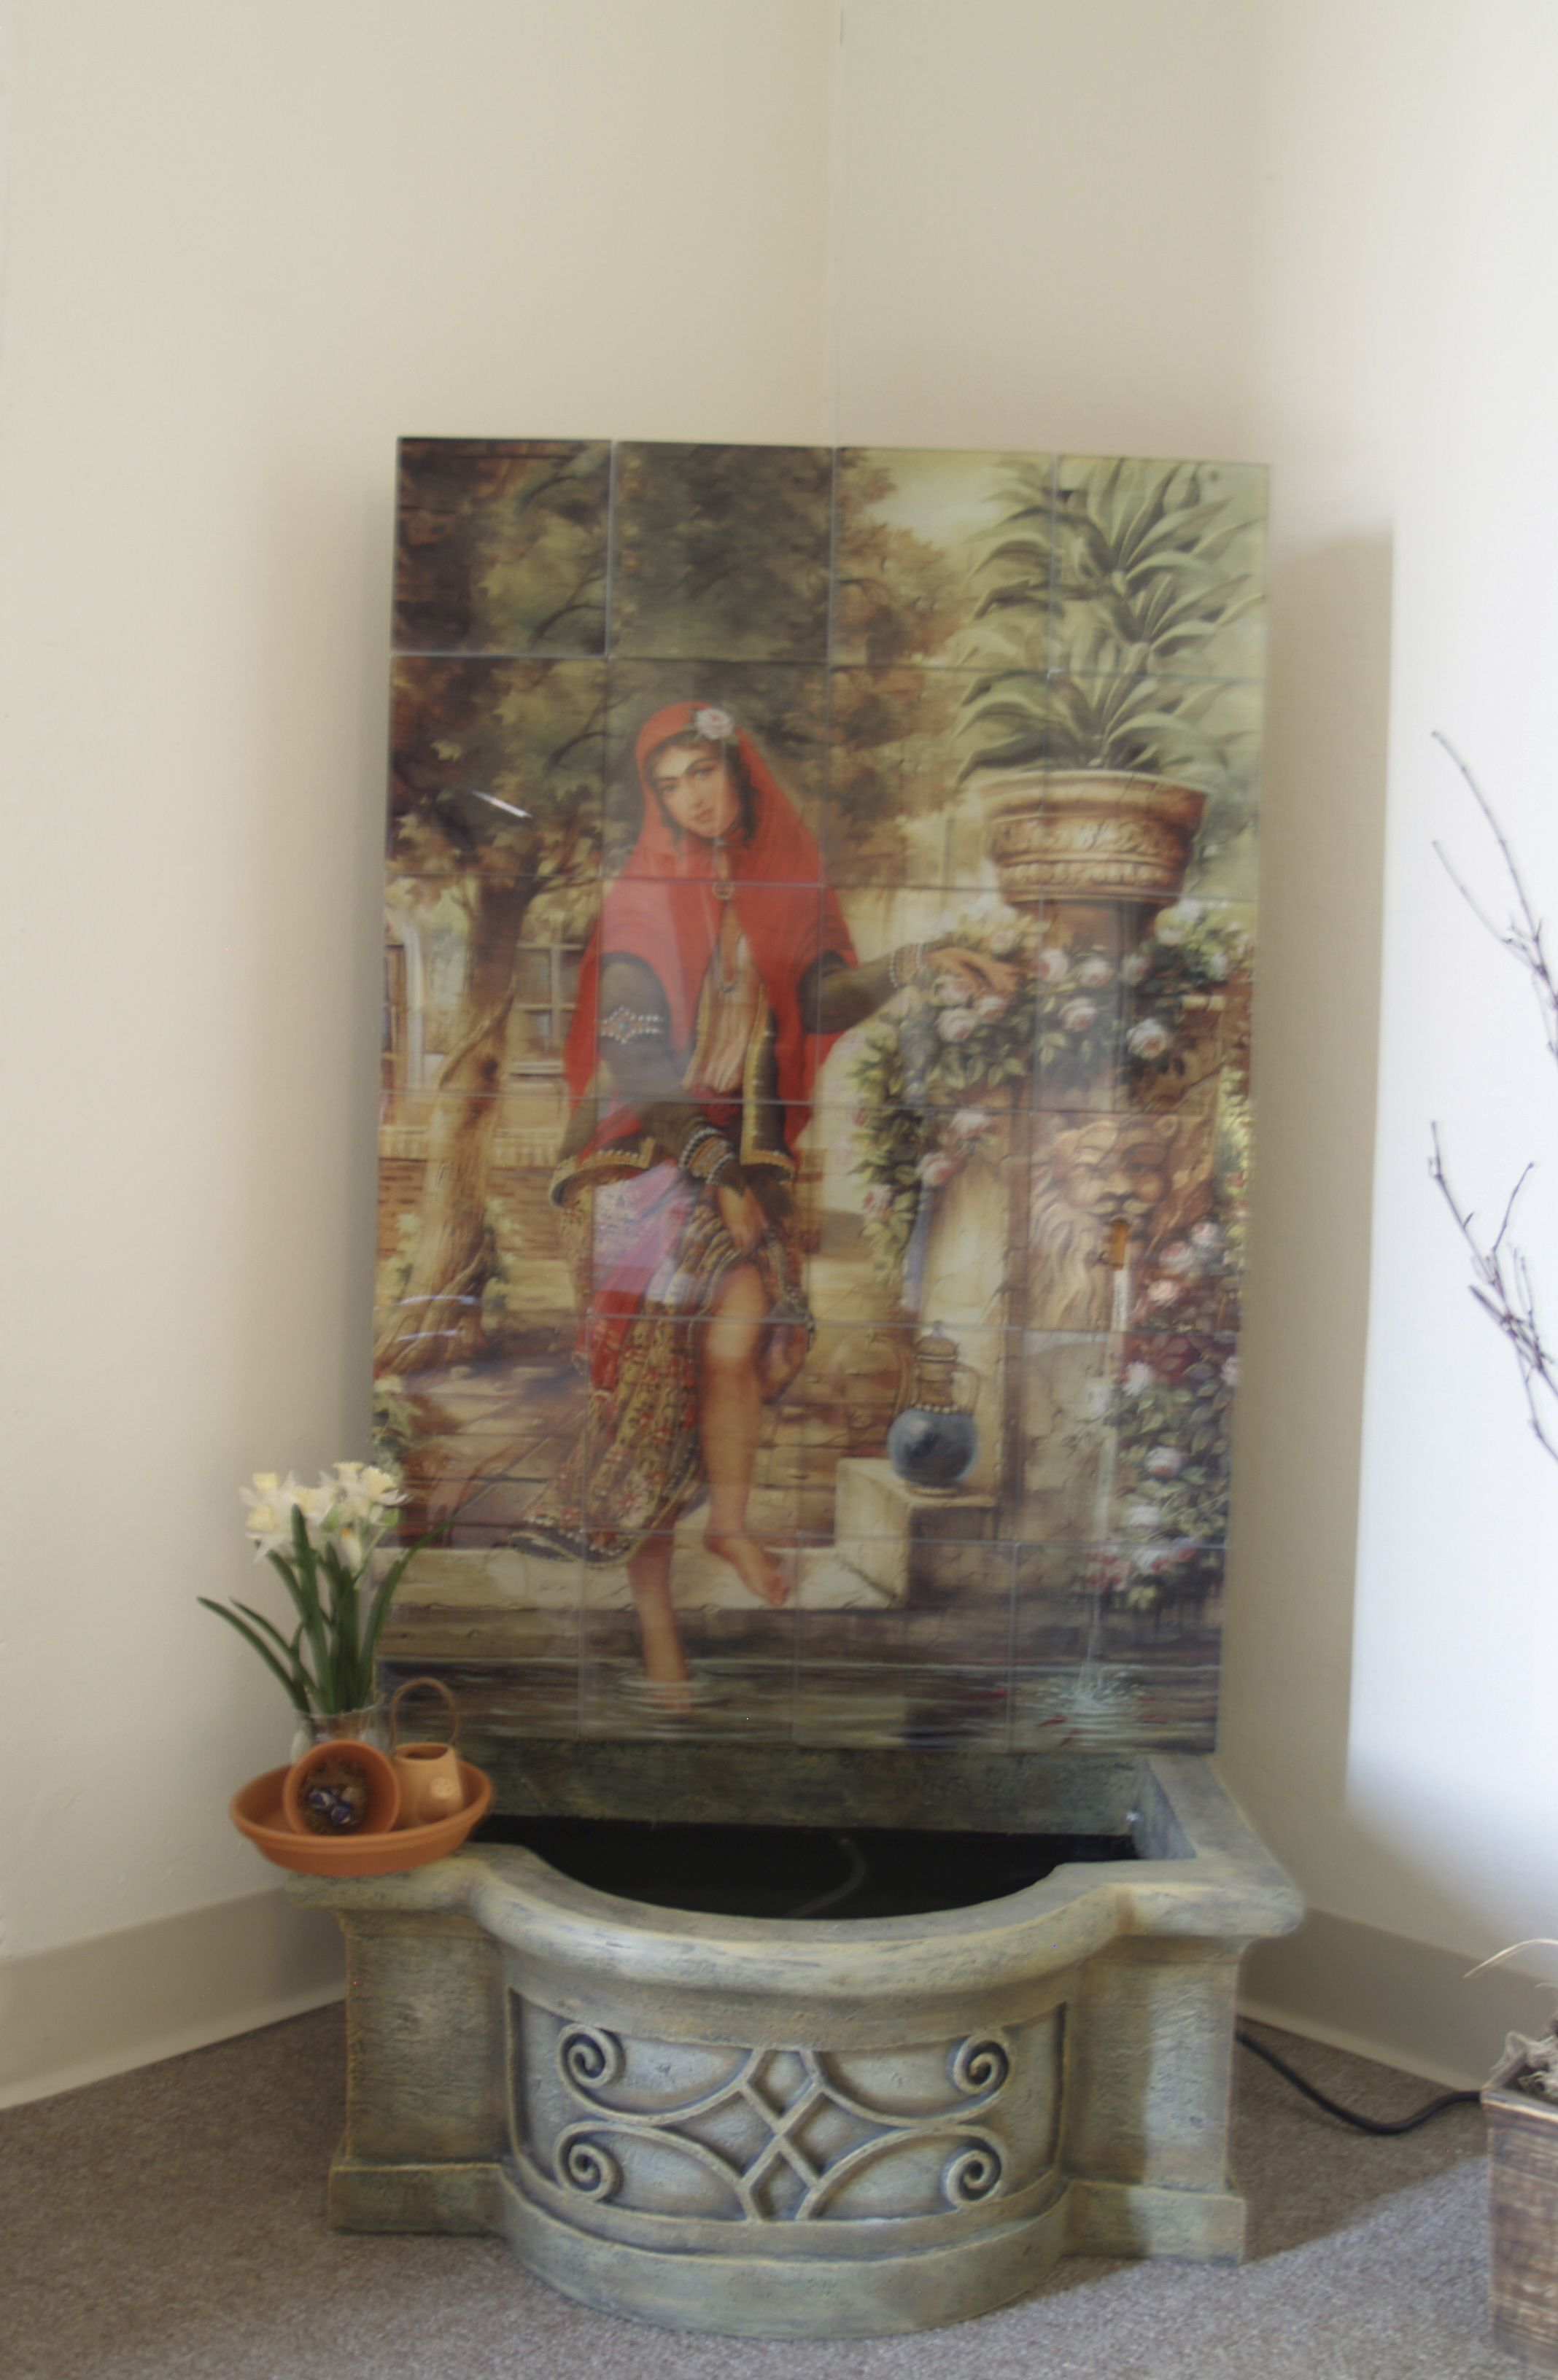 Water fall, Persian girl by the water on glass tiles